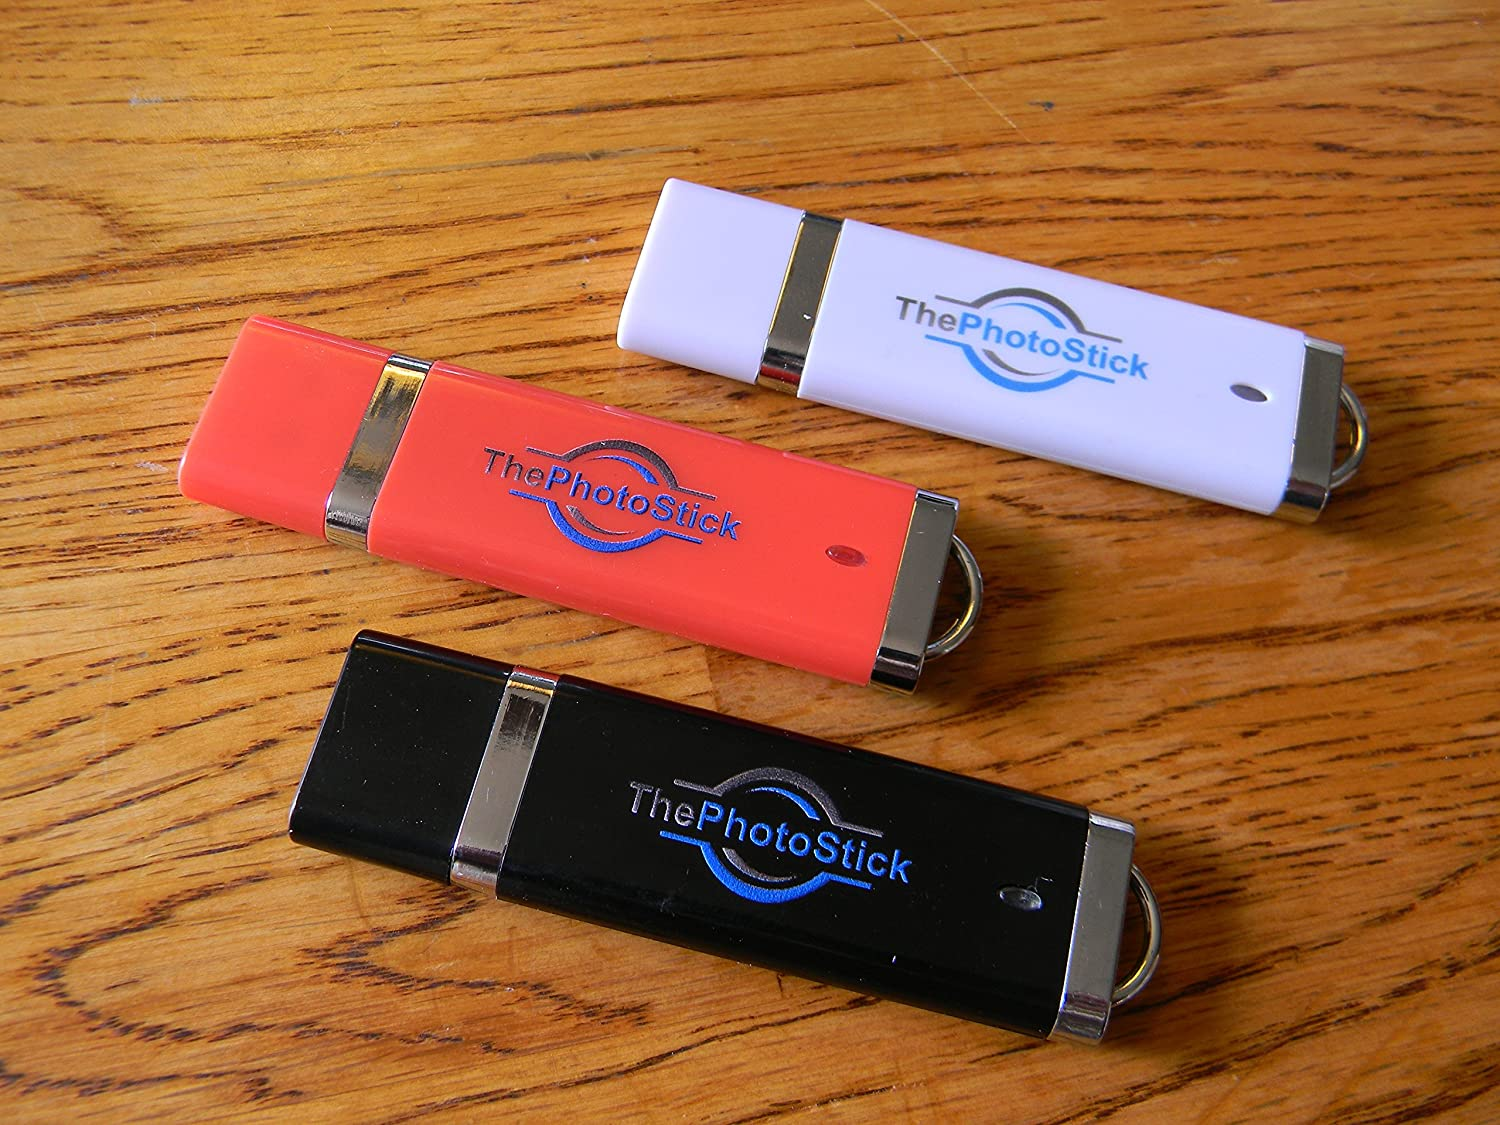 ThePhotoStick Review 2020 We Tested The Device